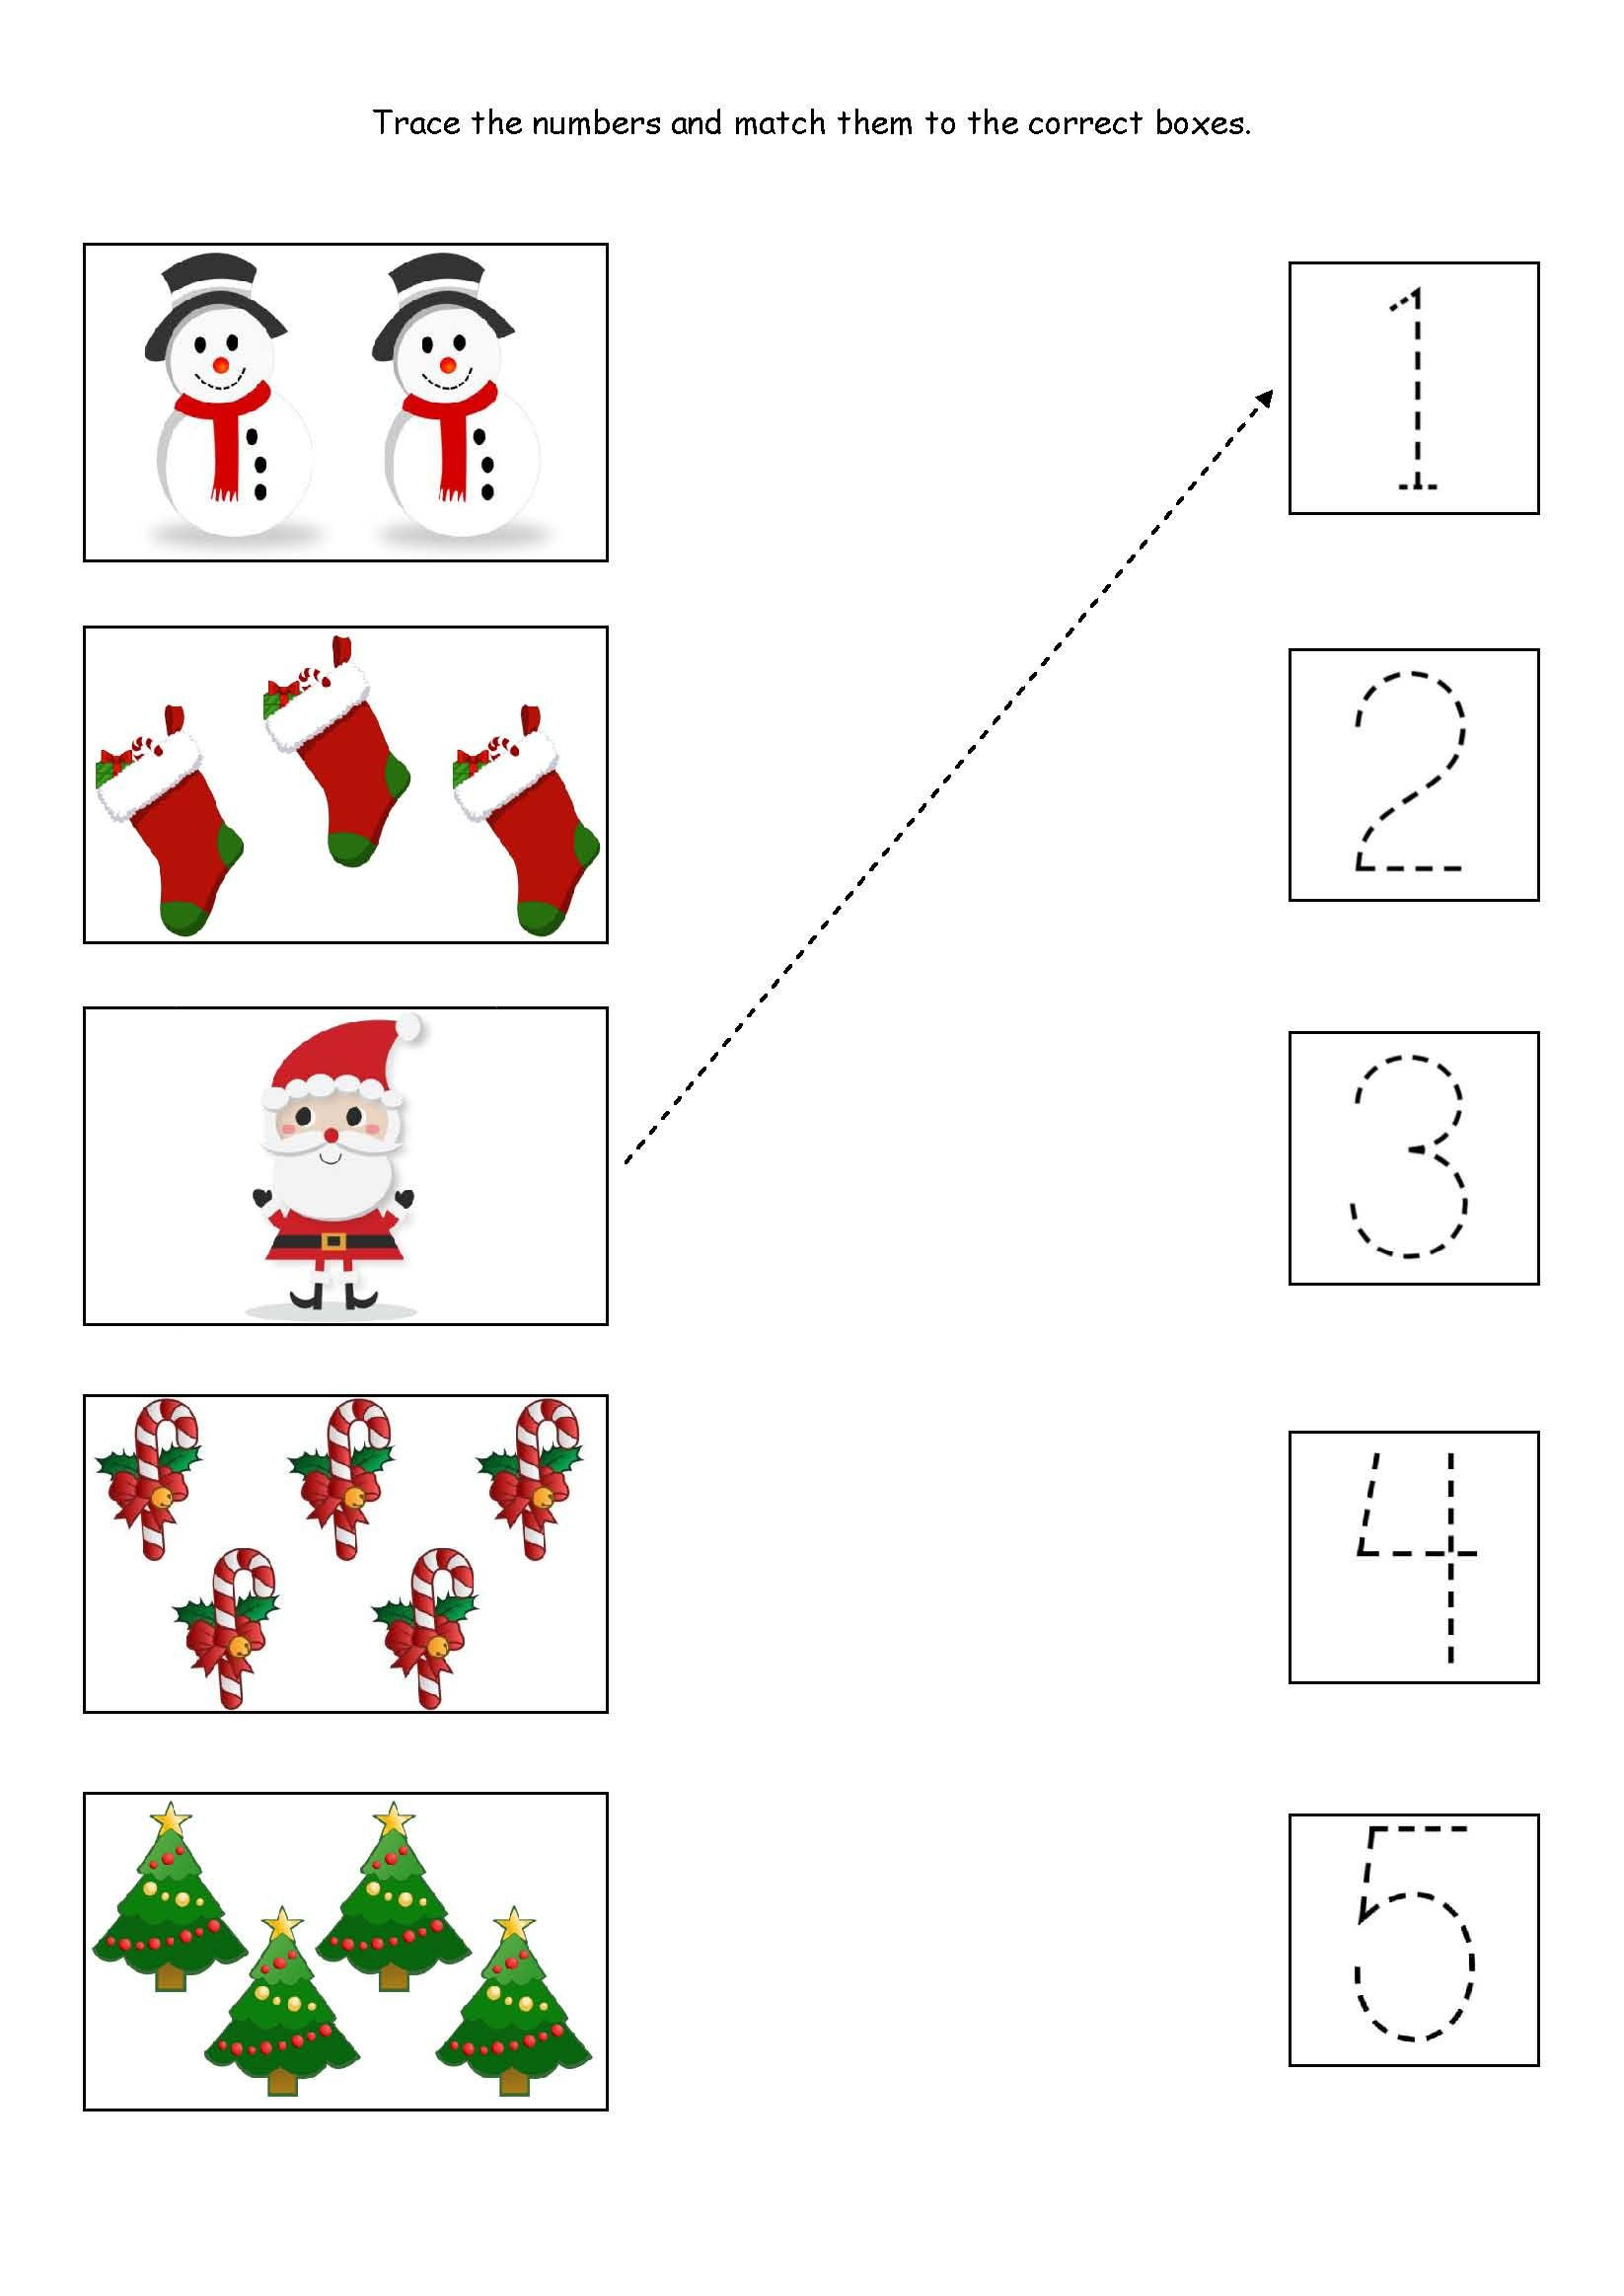 Preschool Christmas Worksheet Printables Cute Little Christmas Counting Matching and Tracing